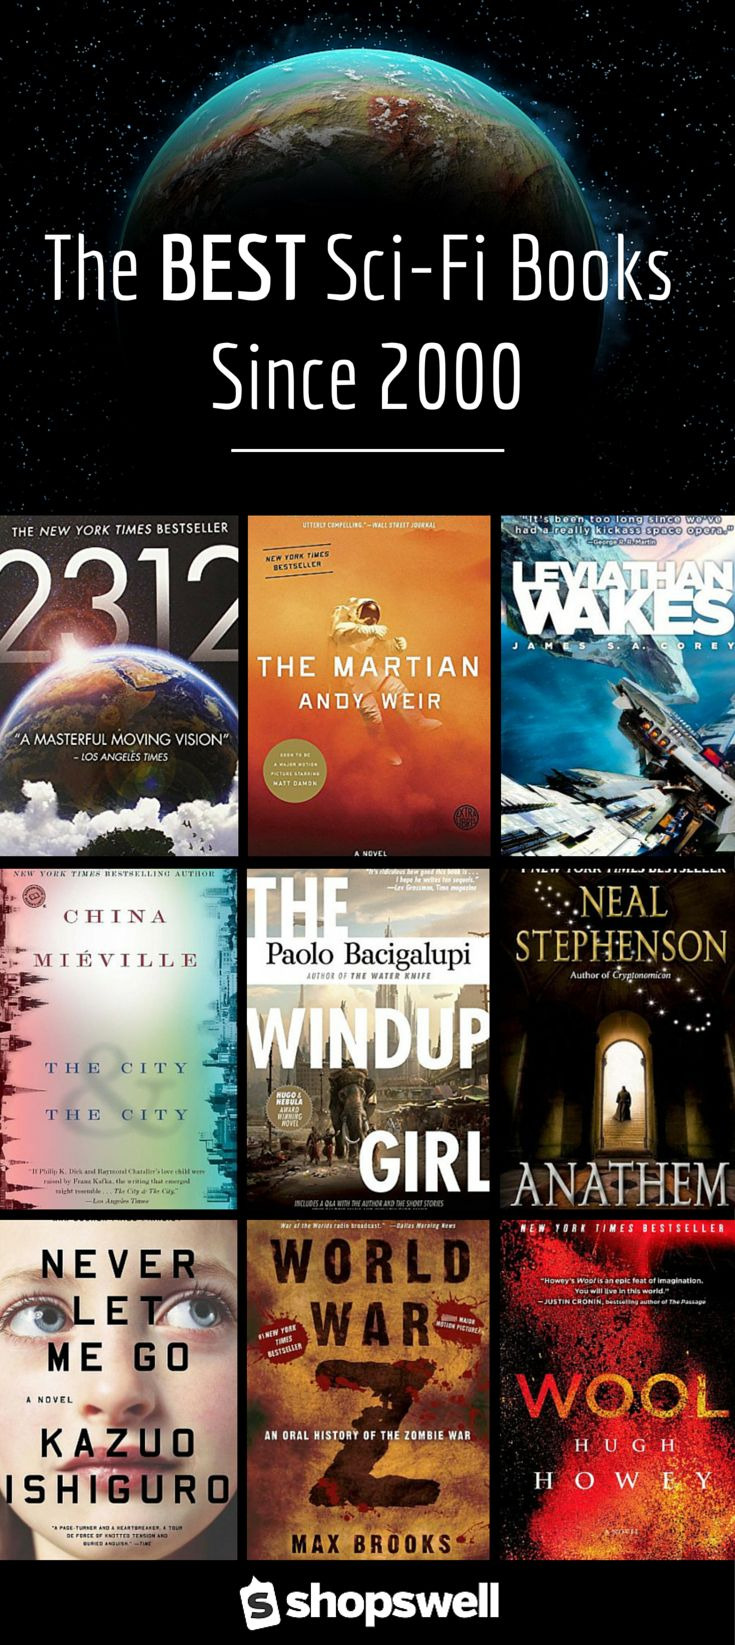 35 of the BEST Sci-Fi Books published since the year 2000 - including World War Z, Wool, the Windup Girl, and The Martian.